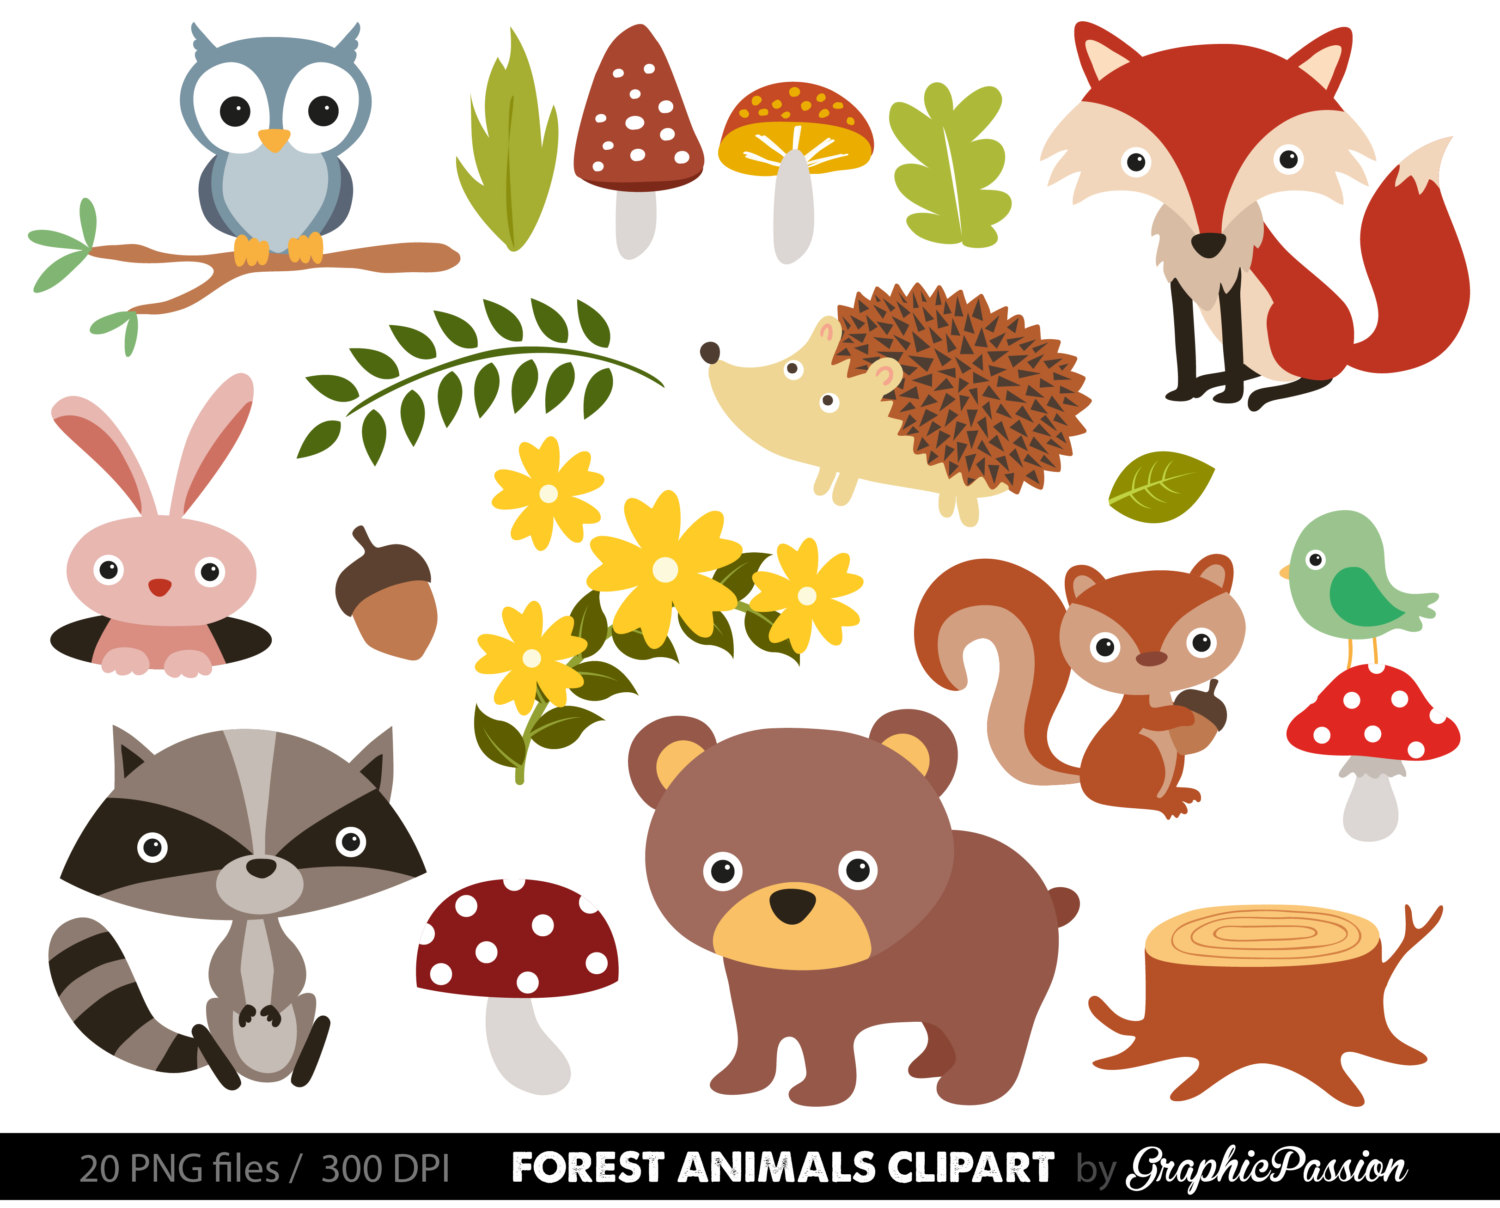 animal png hd for kids transparent animal hd for kids png images rh pluspng com Elephant Clip Art Farm Animal Graphics